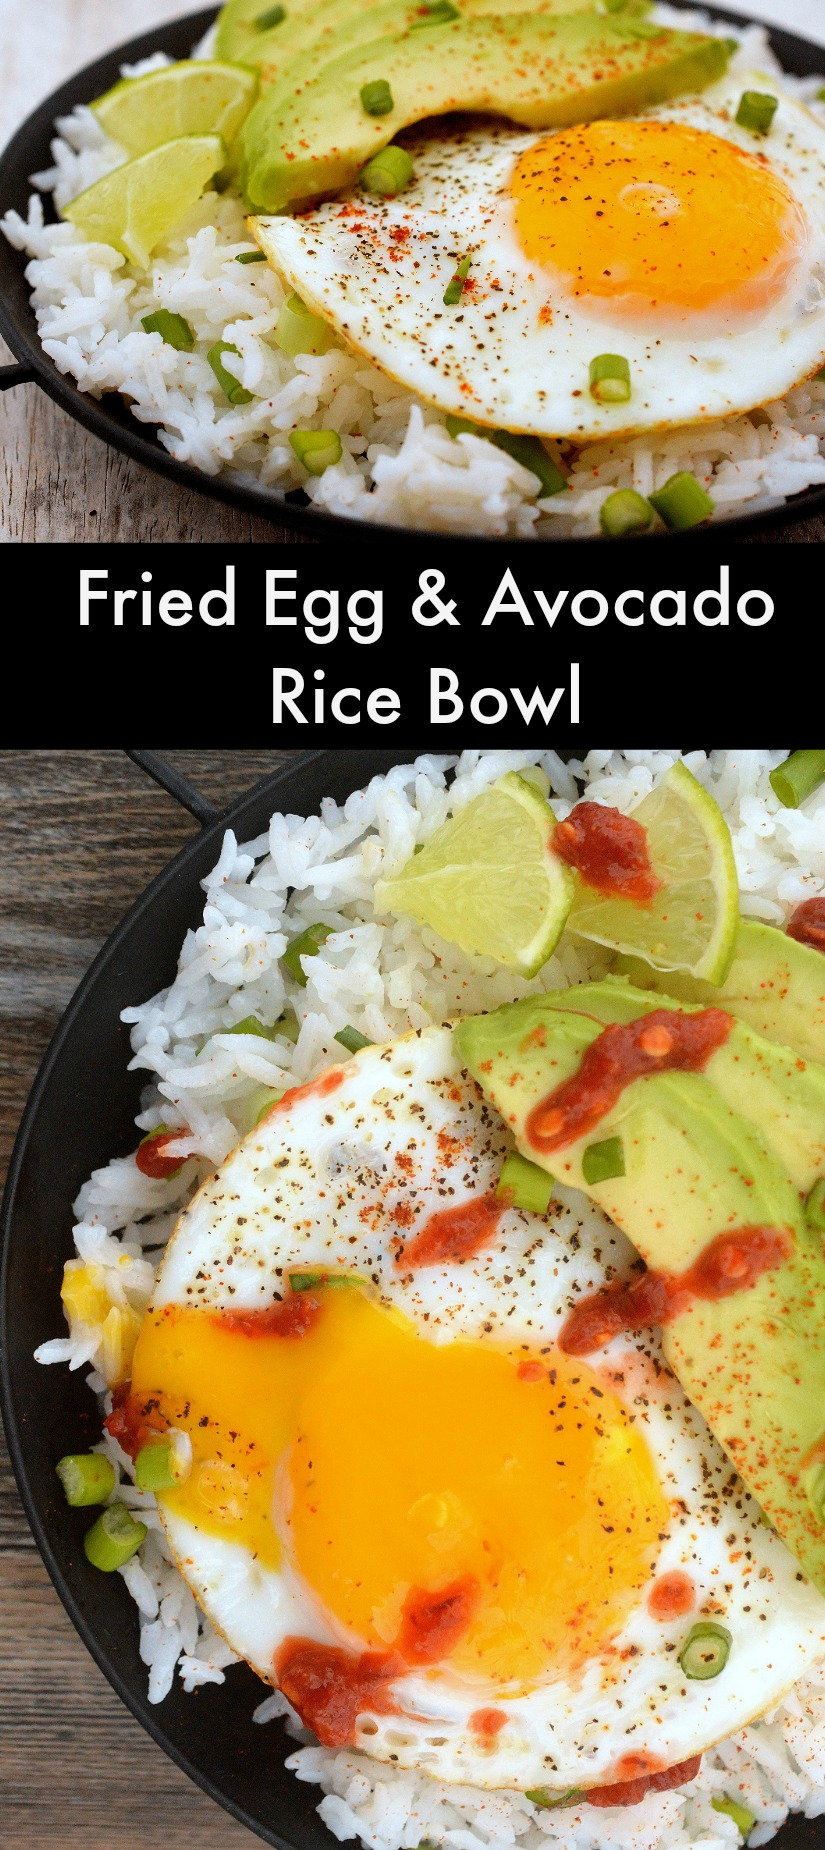 Fried Egg and Avocado Rice Bowl - Fast, satisfying & healthy!